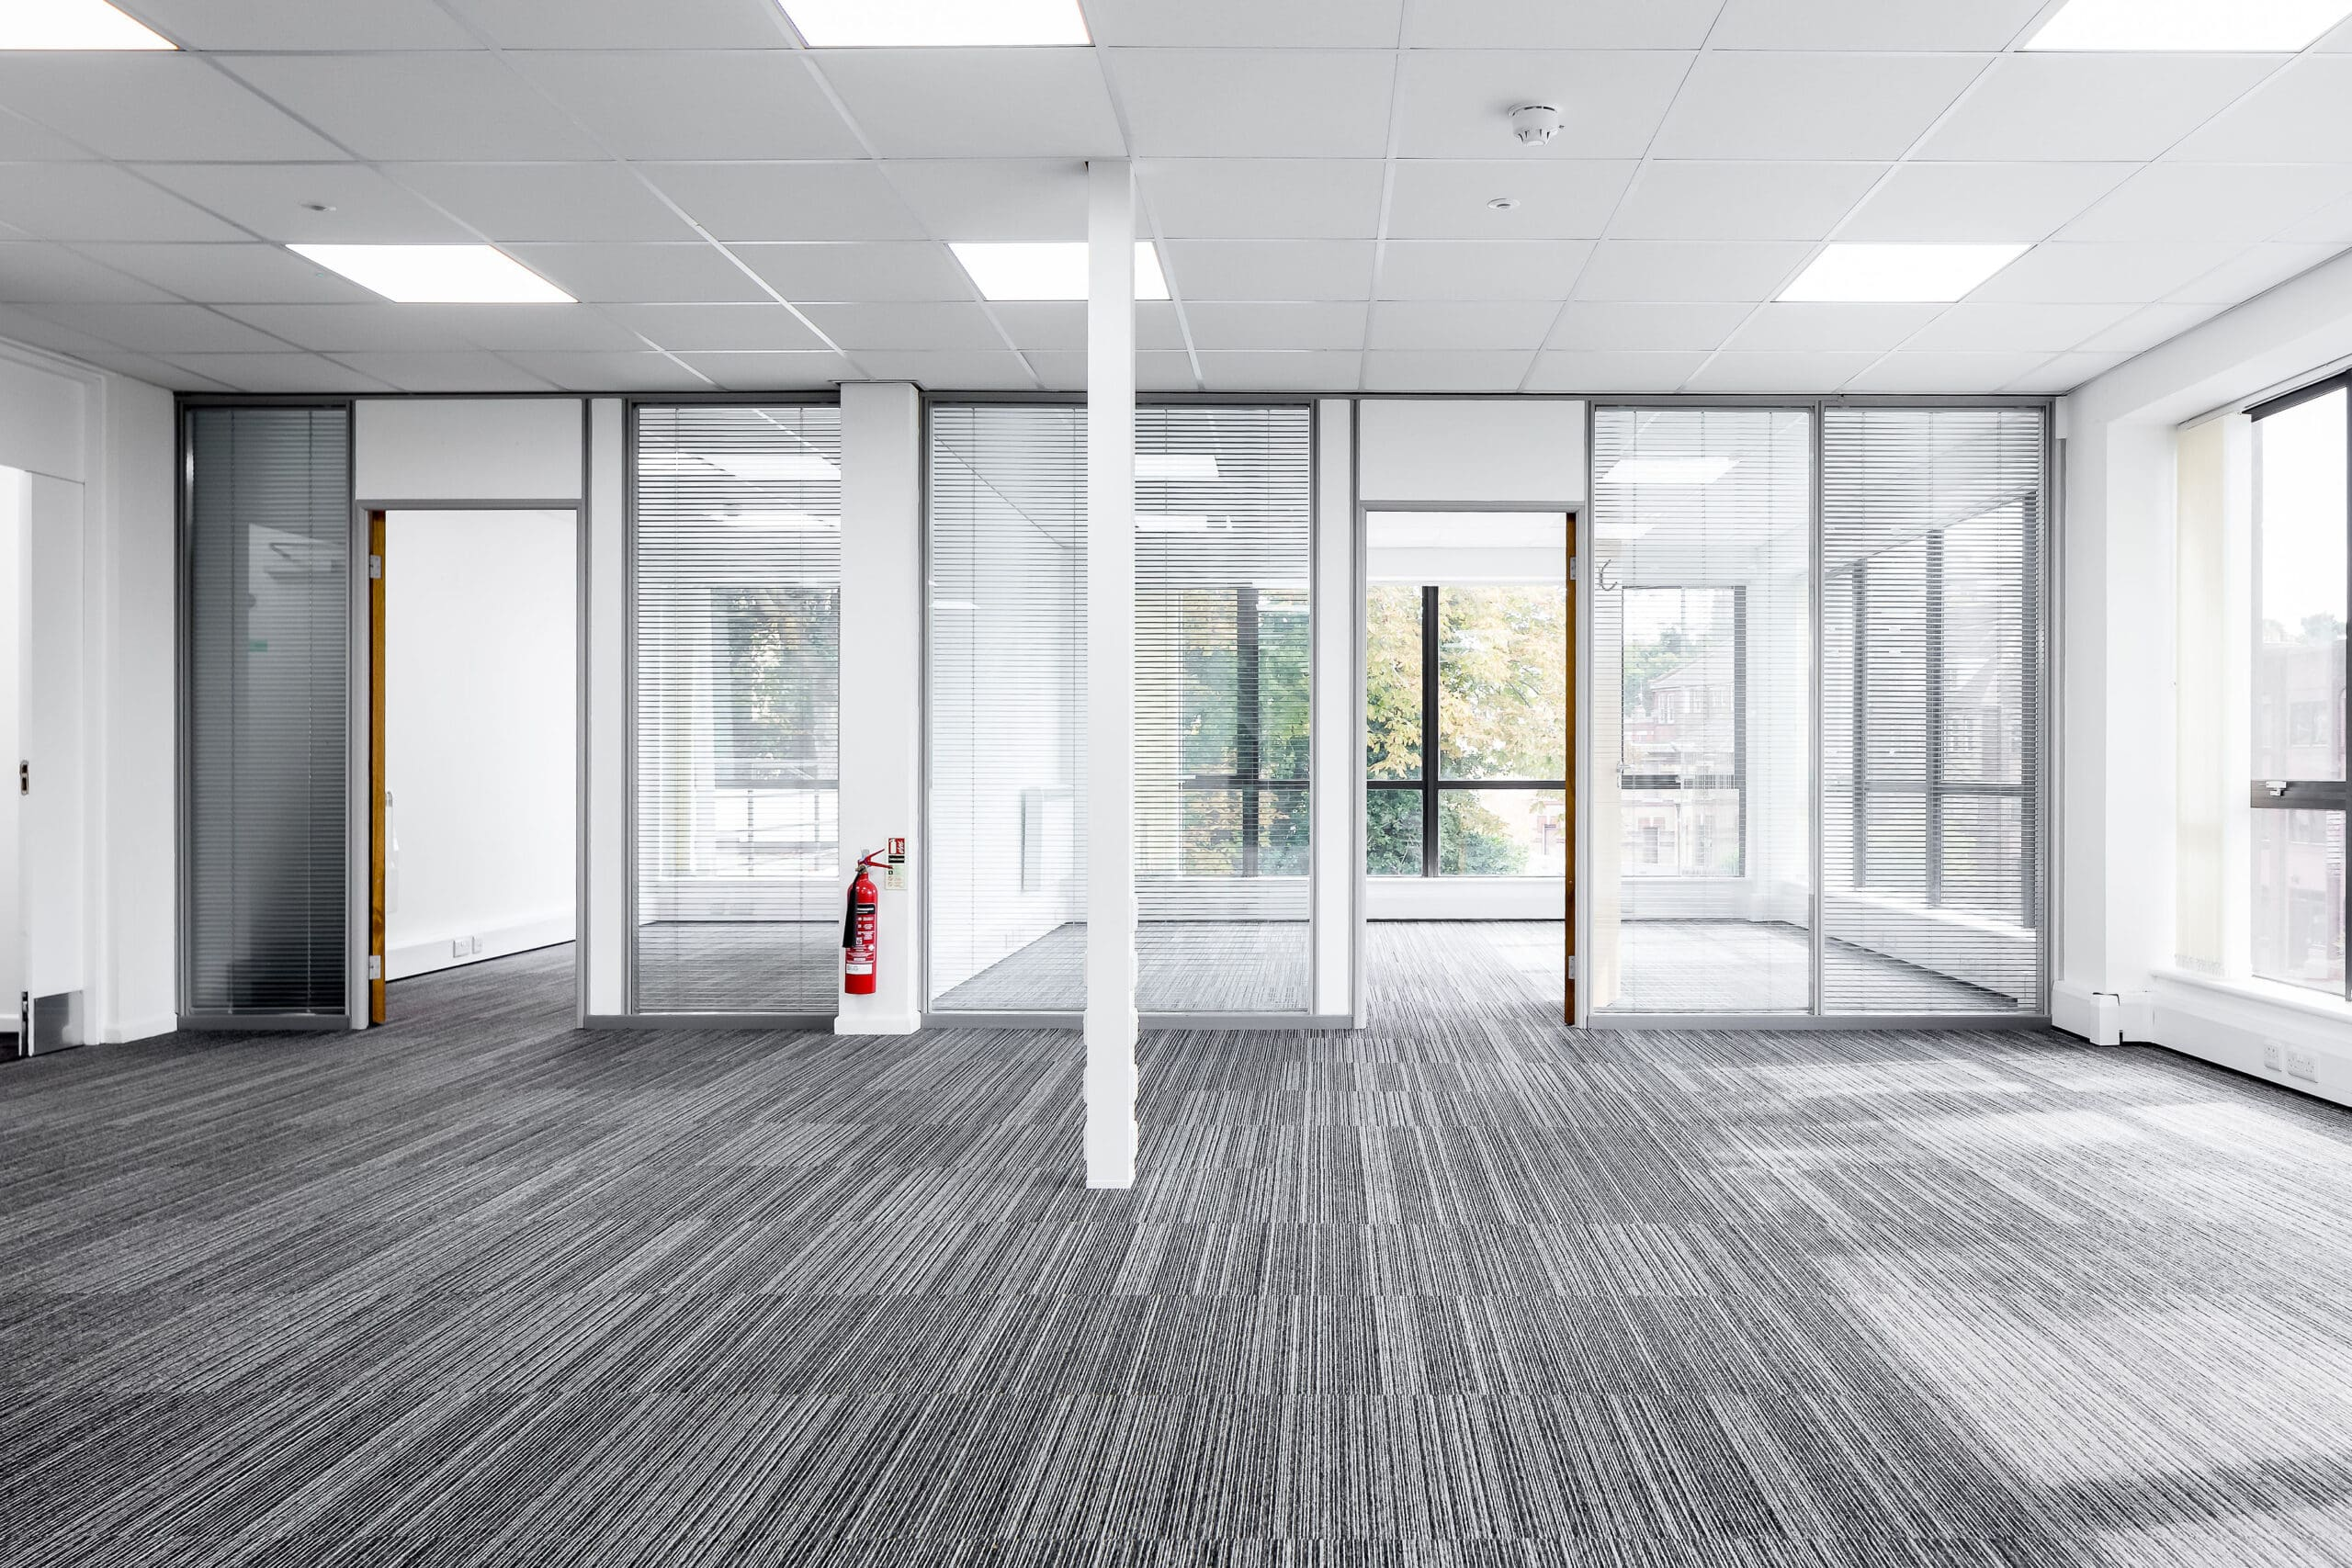 Office space Bournemouth, Virtual office, Coworking Bournemouth, Meeting rooms Bournemouth, Meeting rooms Exeter, Virtual office Bournemouth, Virtual office Exeter, Serviced office Bournemouth, Serviced office Exeter, Coworking Exeter